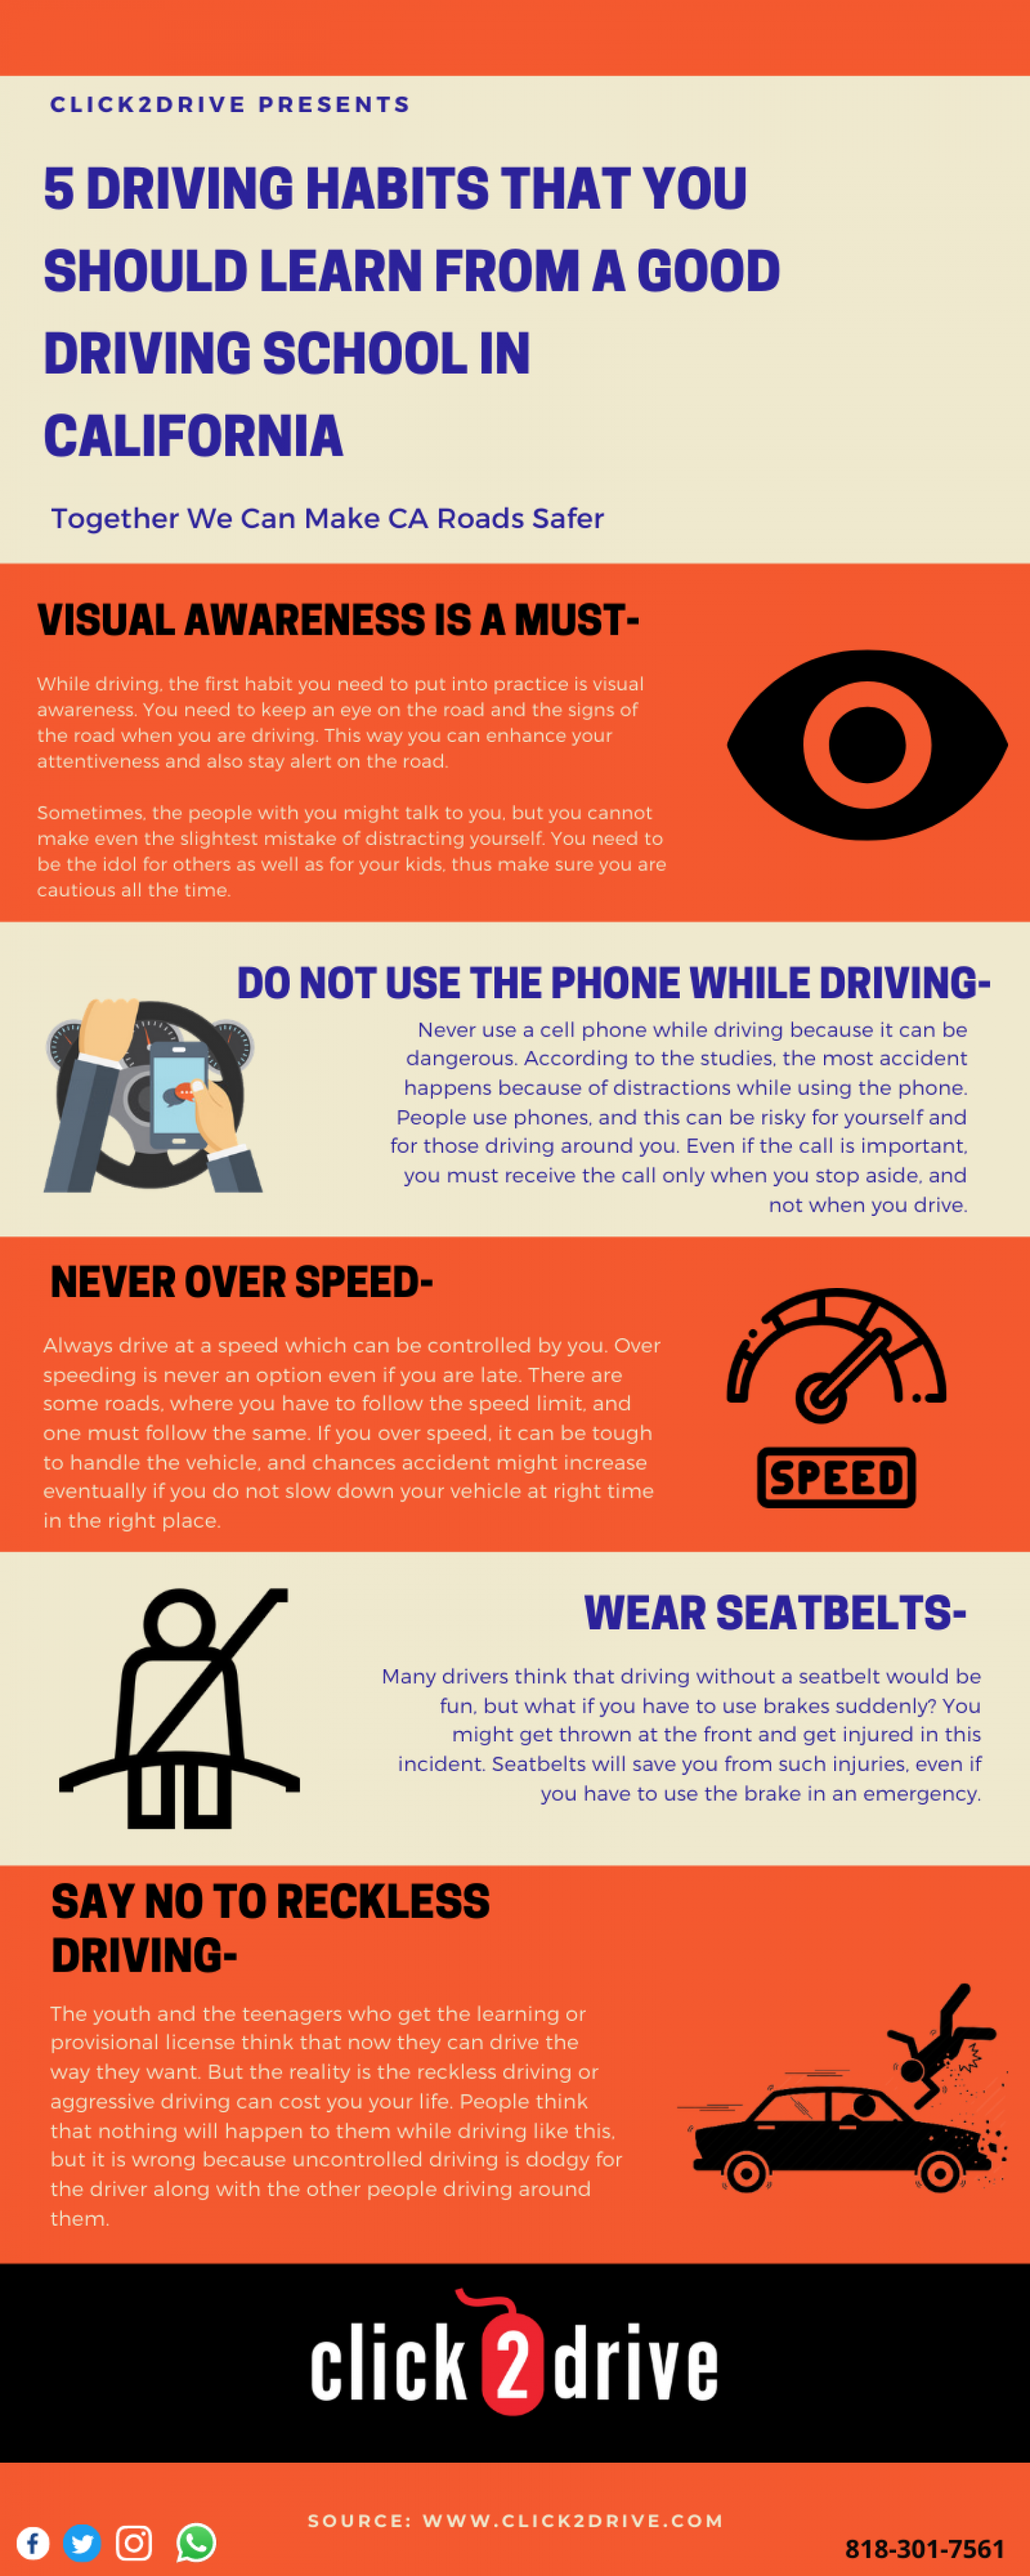 5 driving habits that you should learn from a good driving school in California Infographic